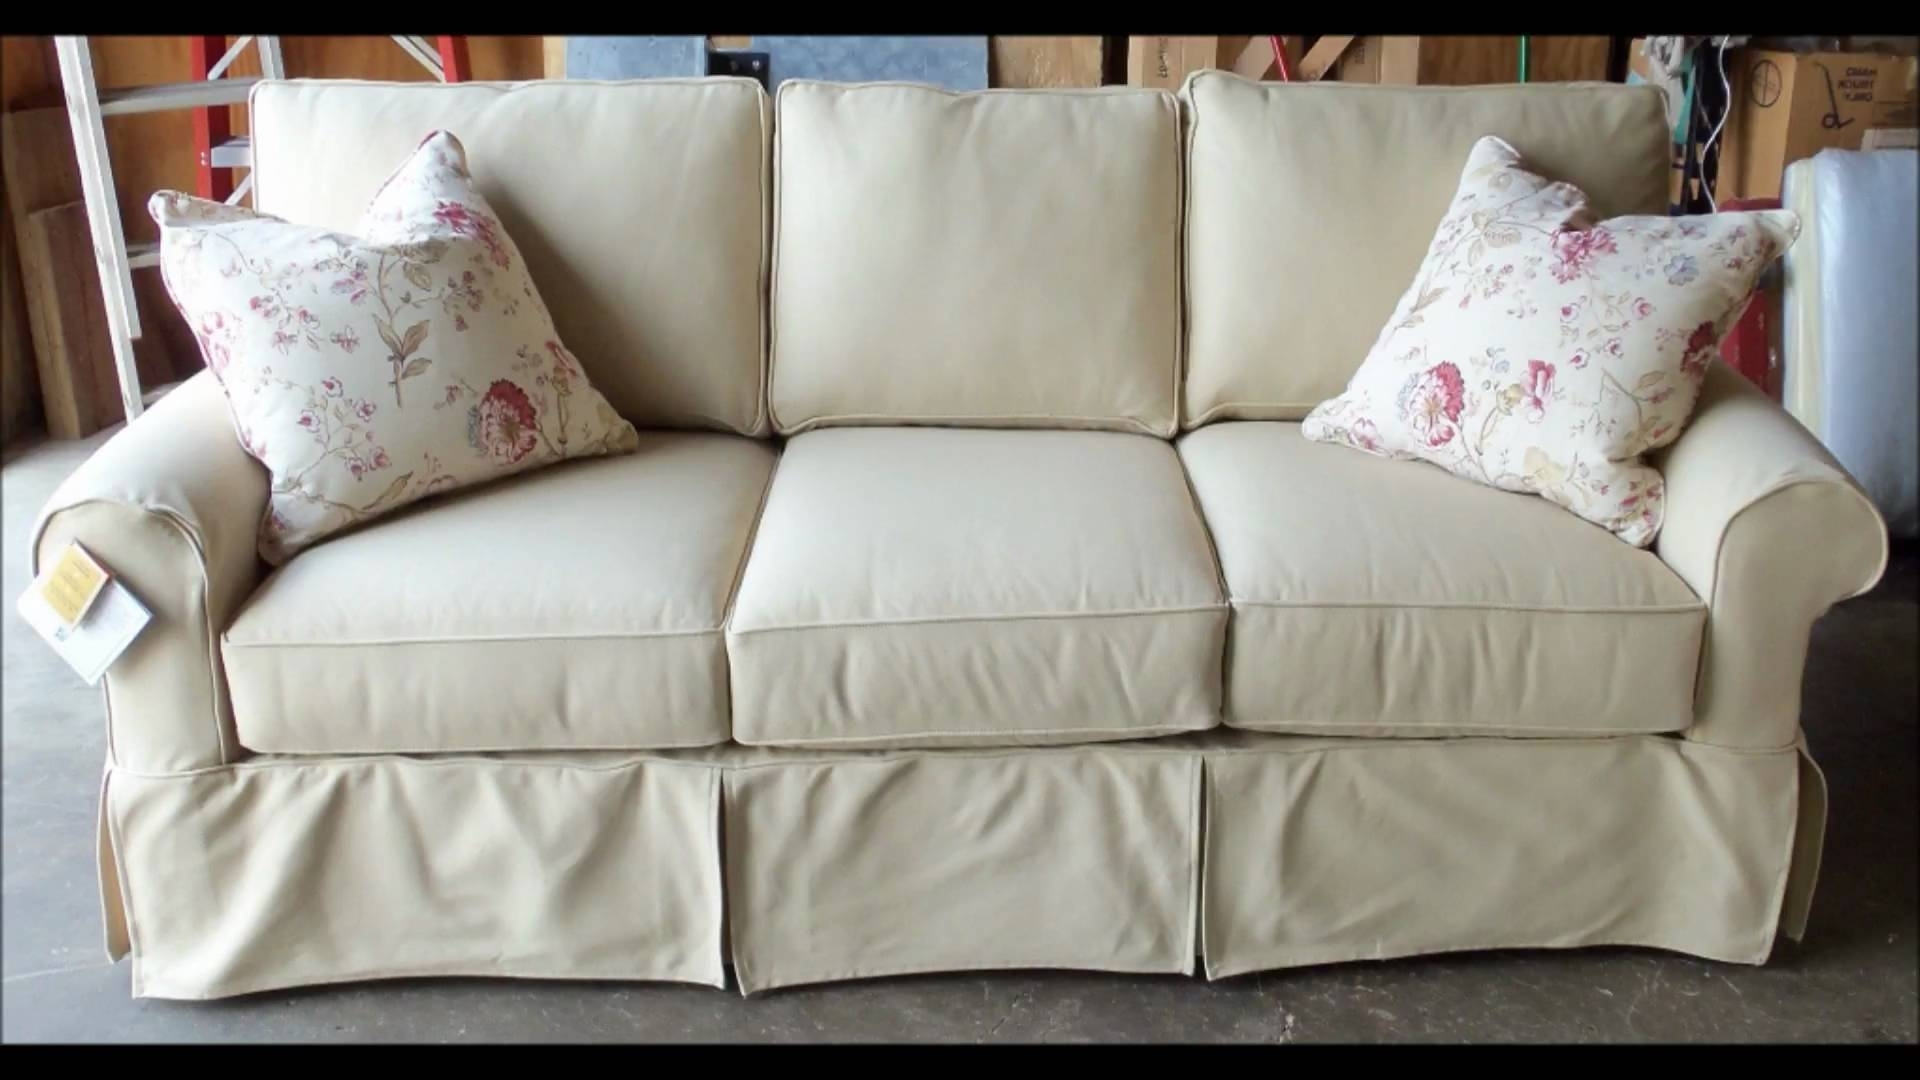 Sofa Covers With Separate Cushion Covers Couch Slipcovers With Regarding Most Current Slipcovers Sofas (View 17 of 20)